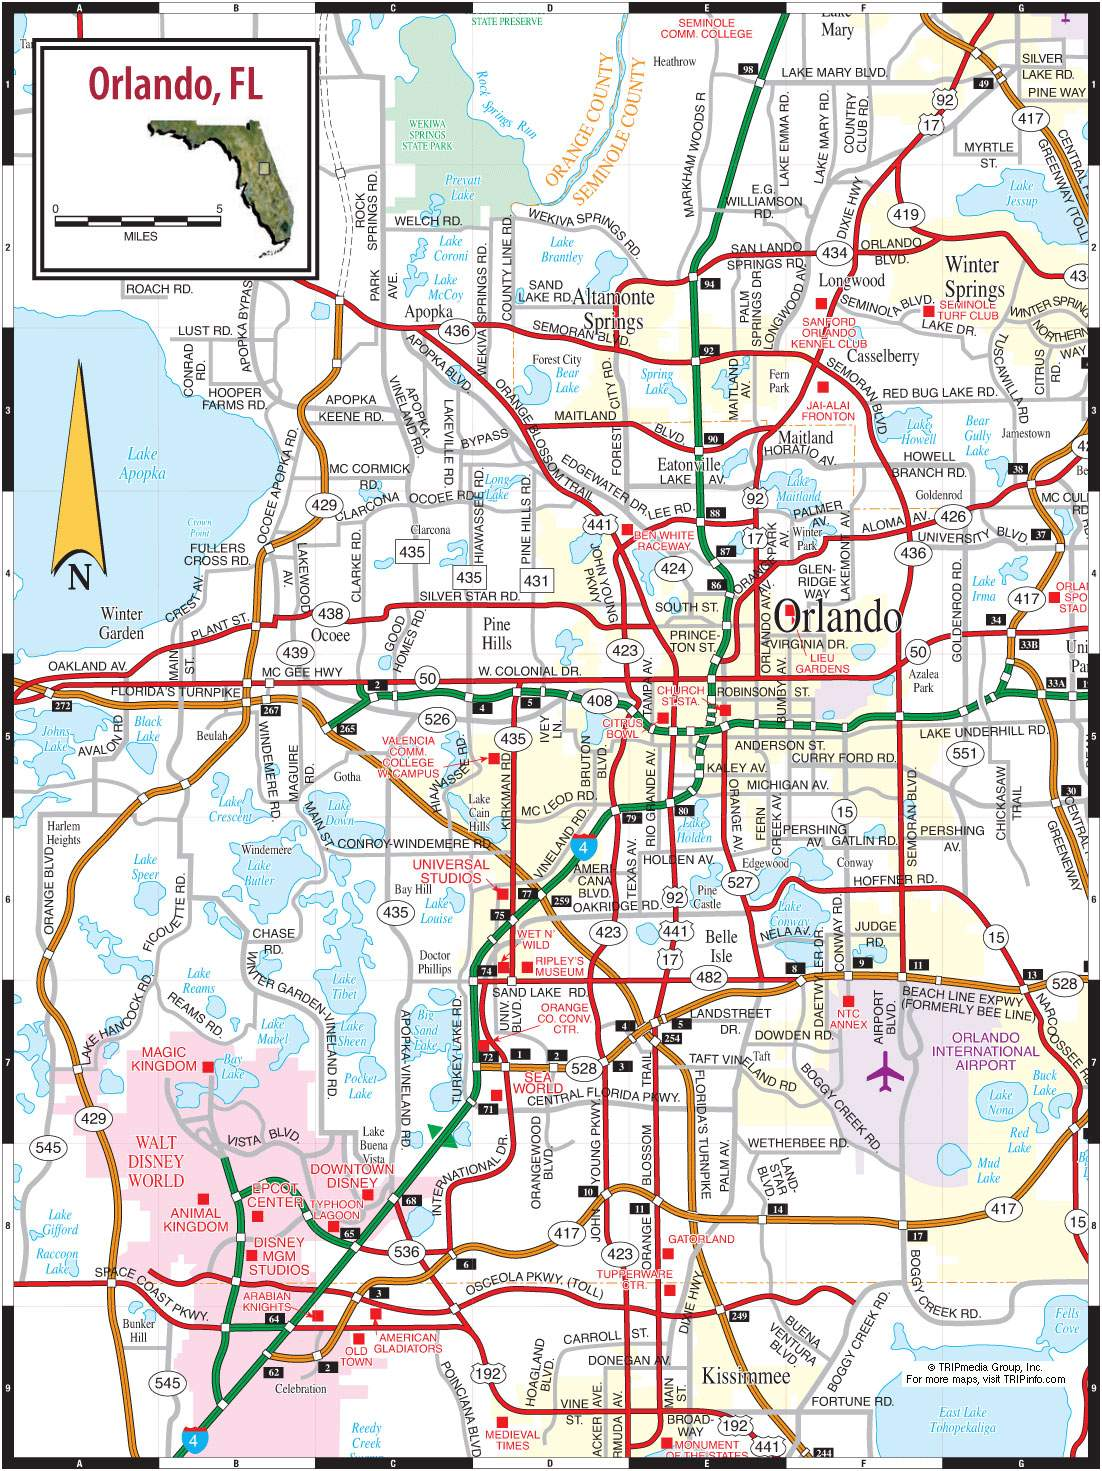 orlando map of florida Large Orlando Maps For Free Download And Print High Resolution orlando map of florida